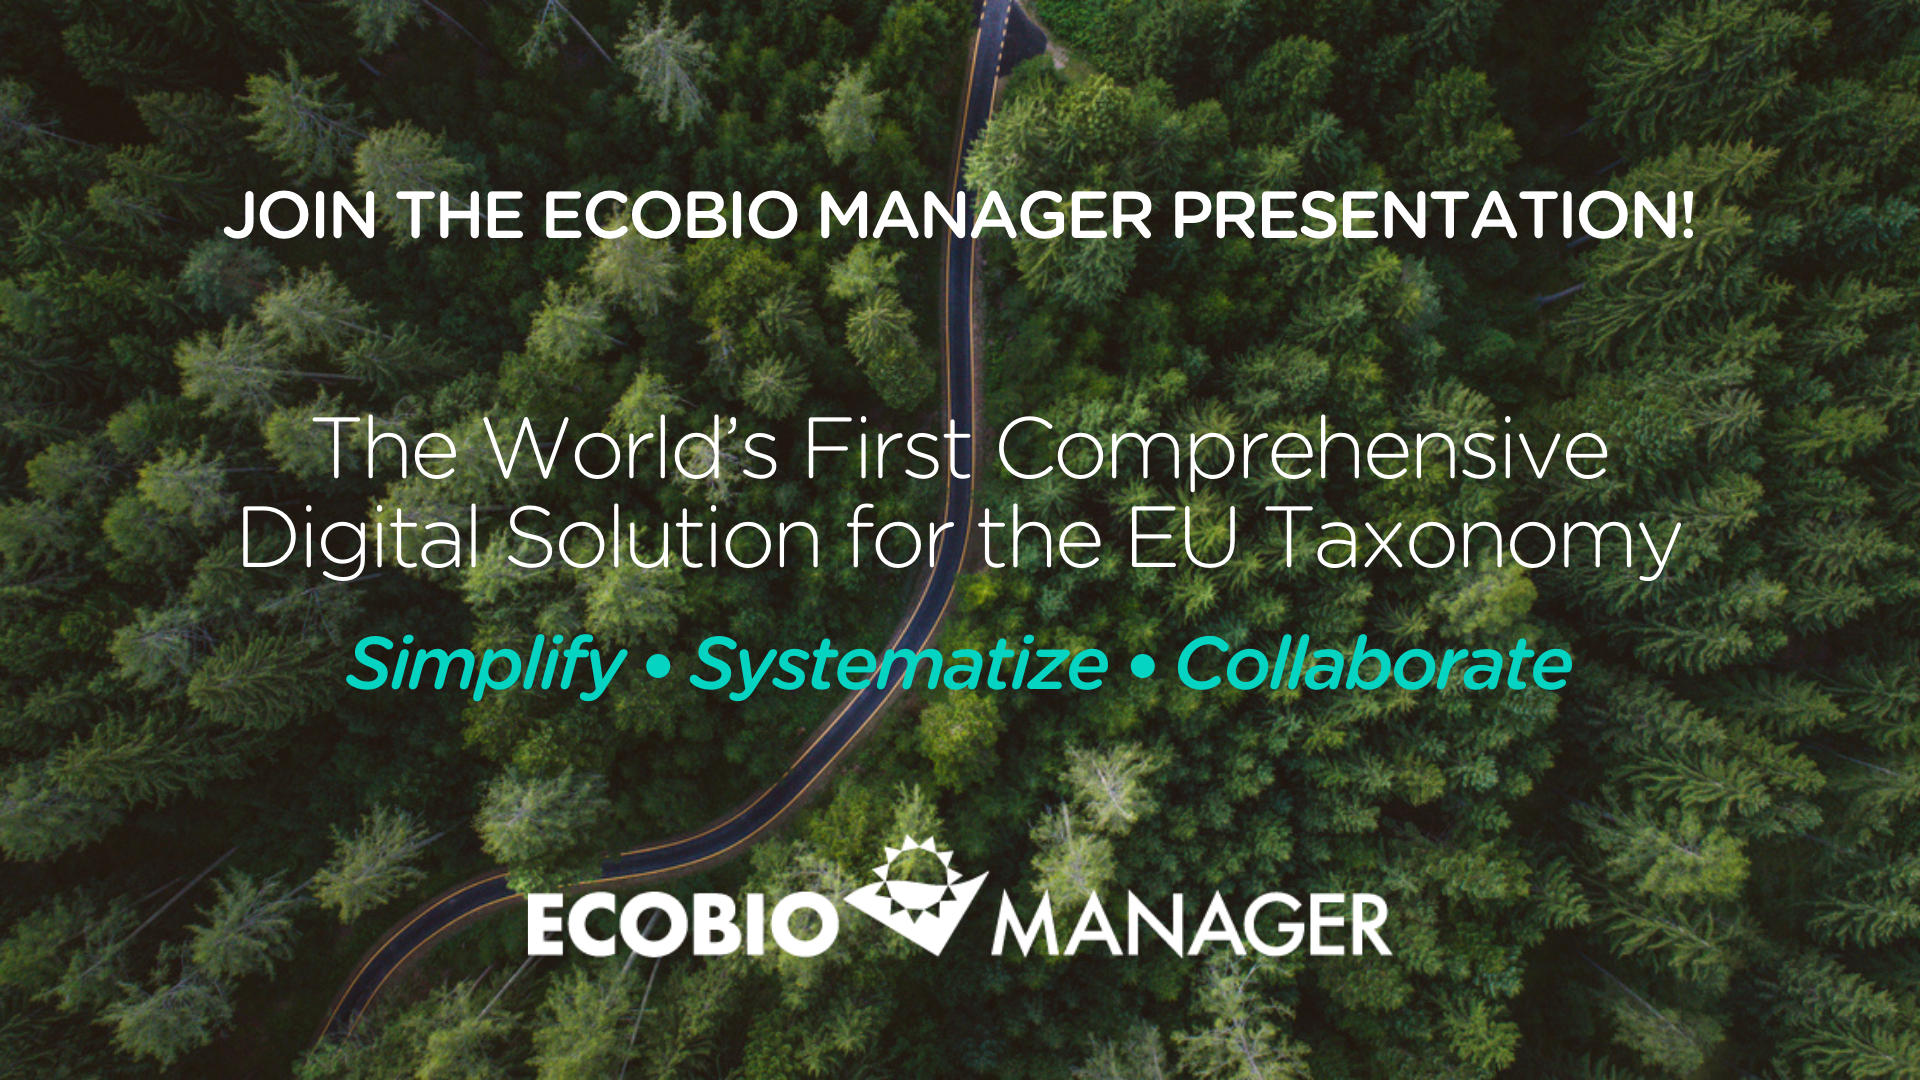 Join our presentation of the world's first comprehensive digital solution for the EU Taxonomy!